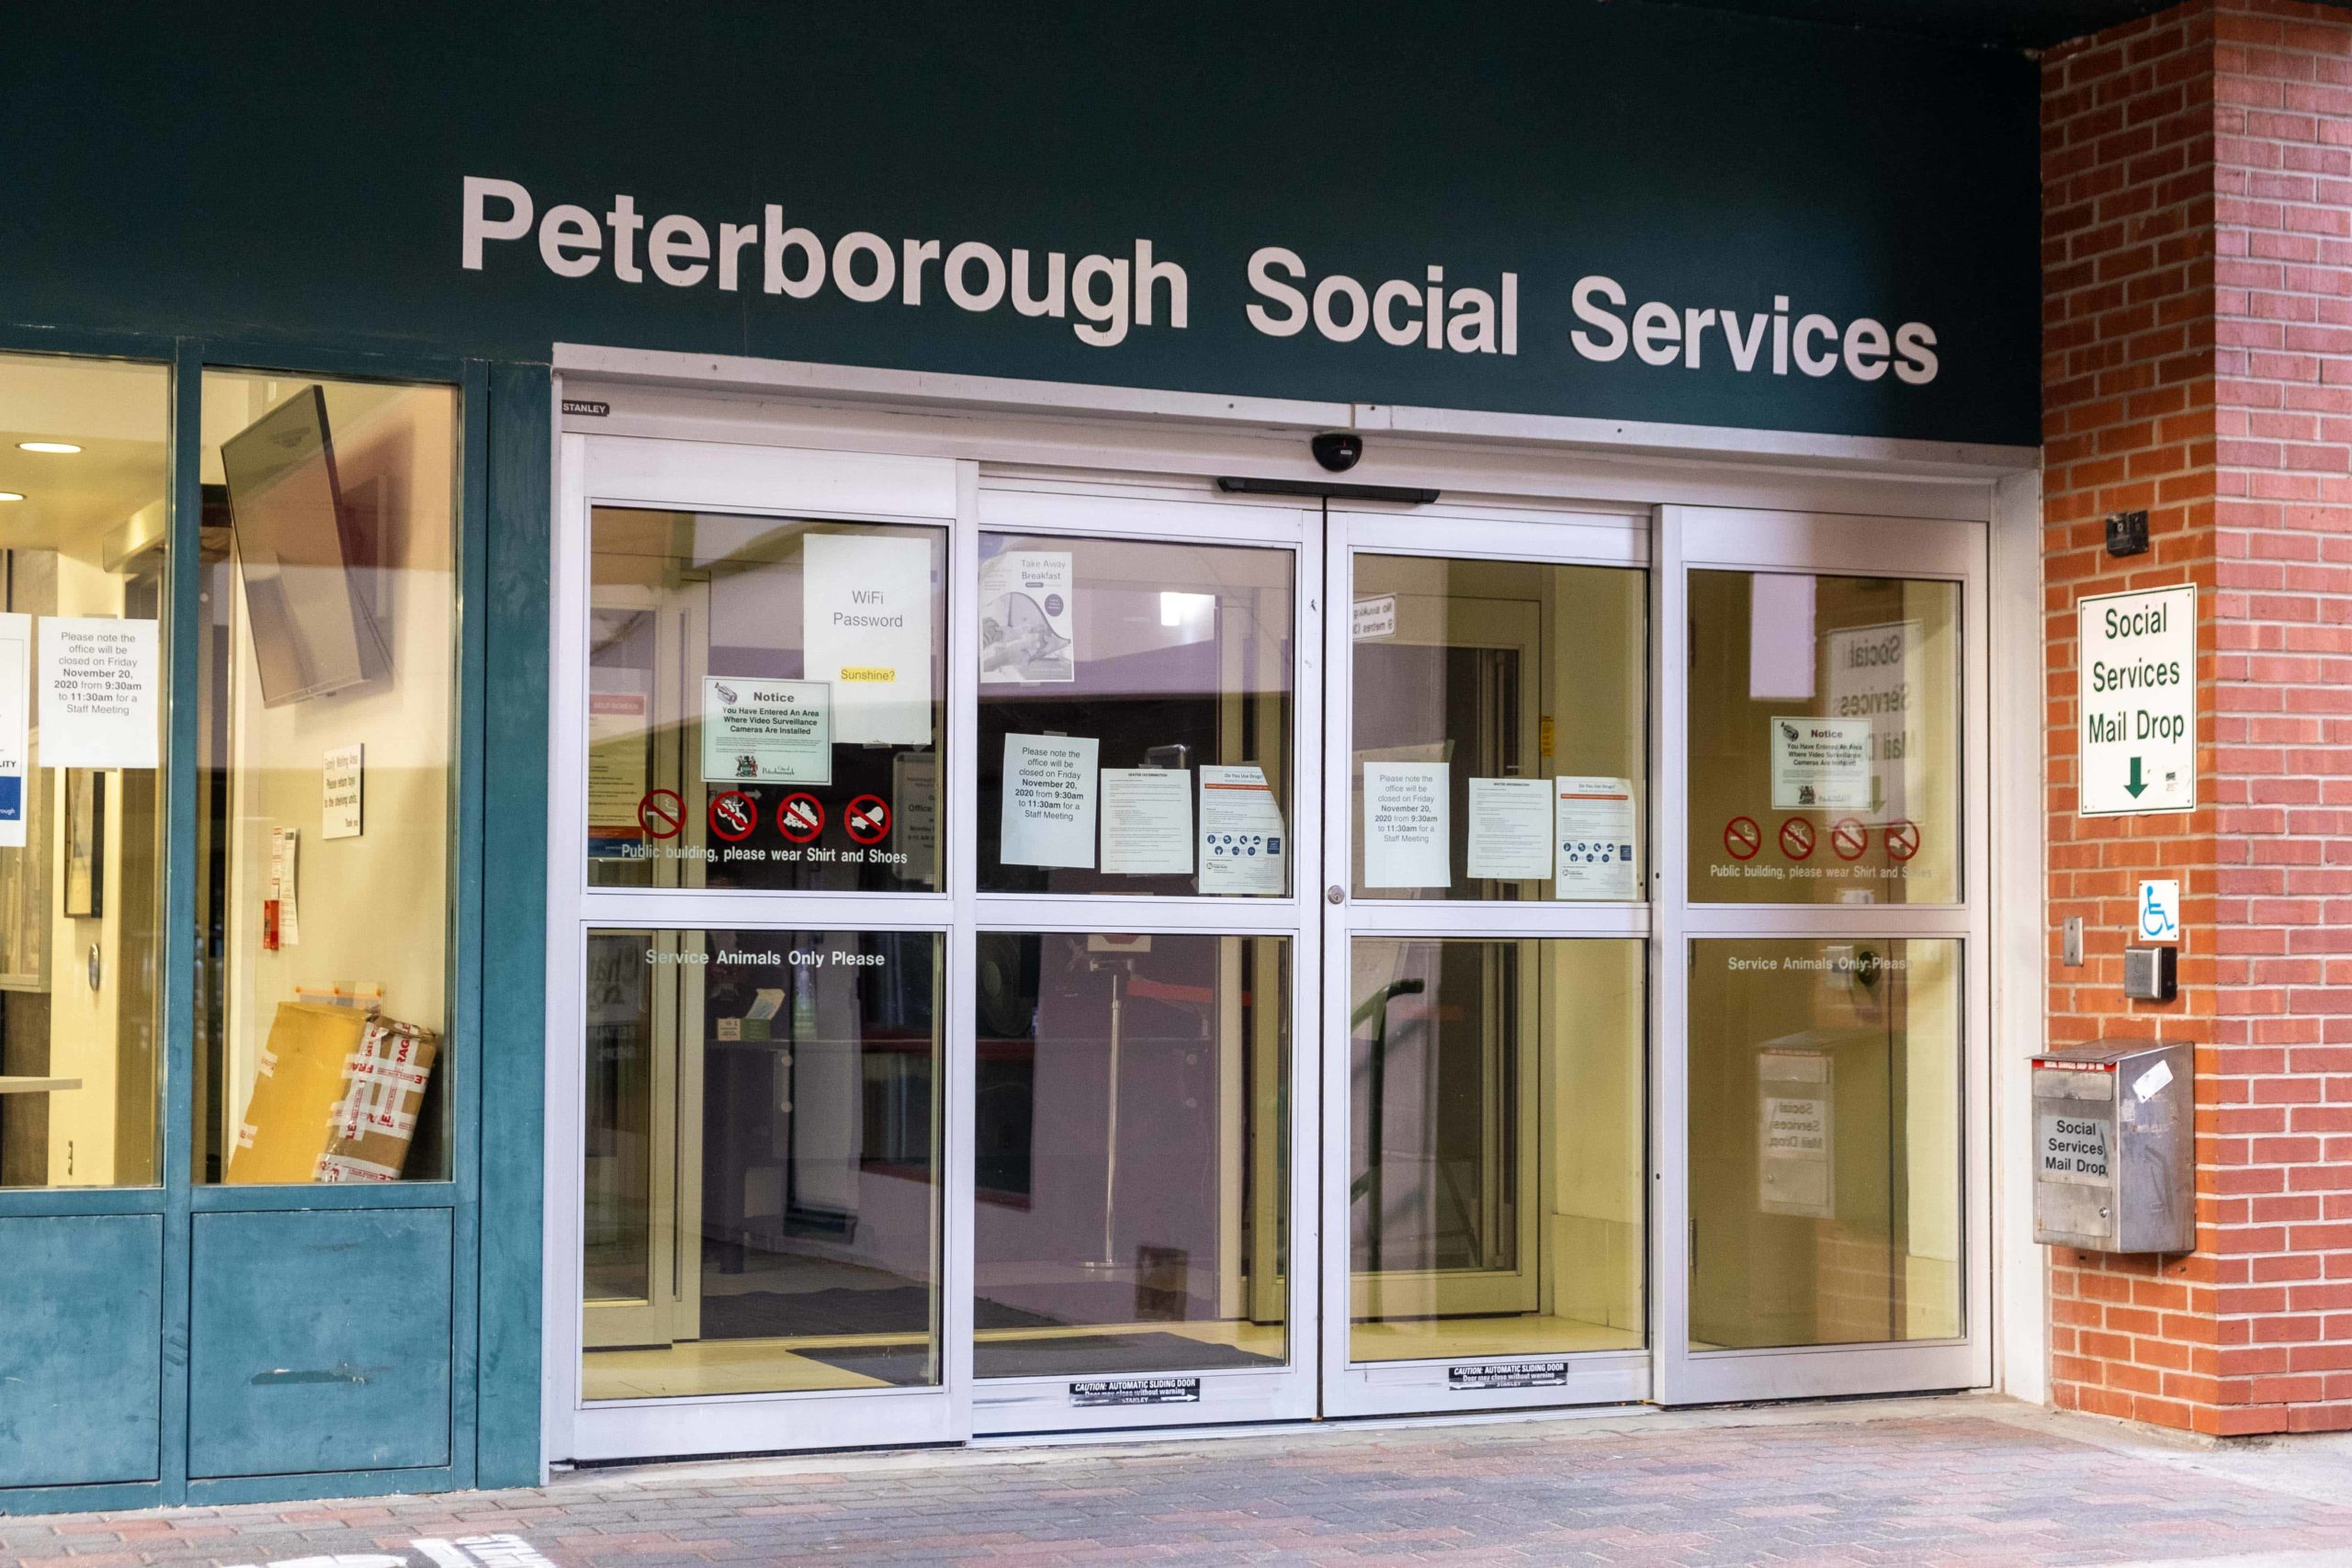 Care about social services? Here's your guide to the City's 2021 draft budget - Peterborough Currents